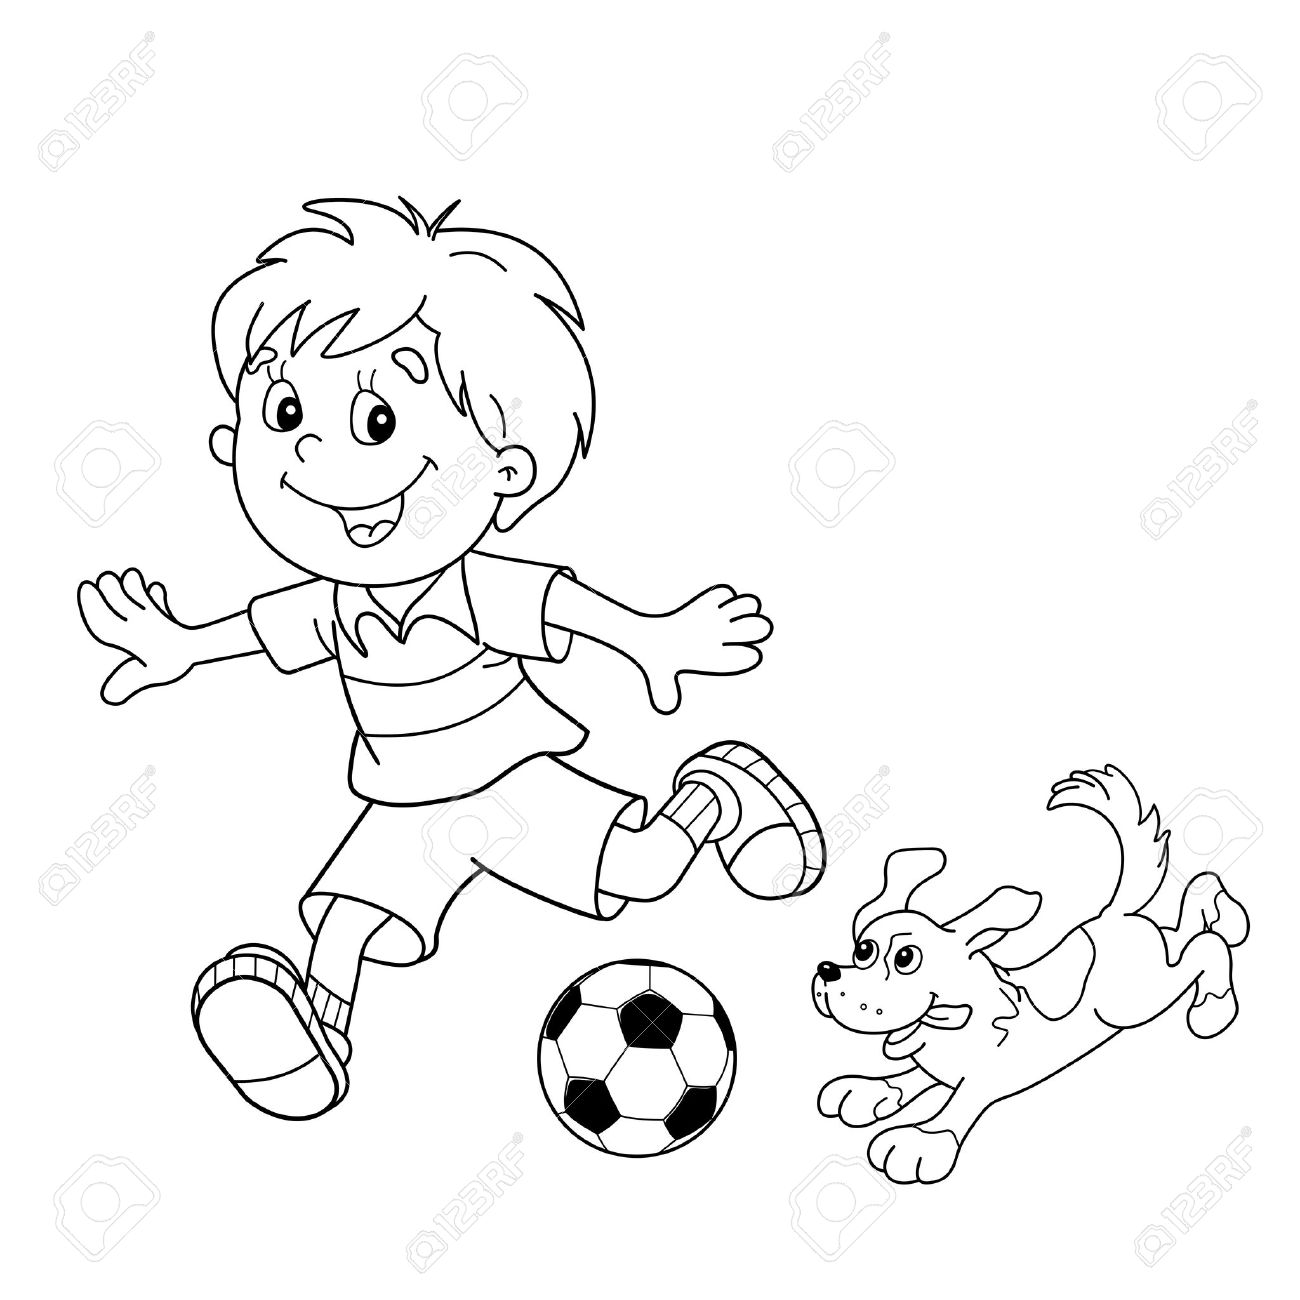 Football Drawing For Kids at GetDrawings.com | Free for personal use ...